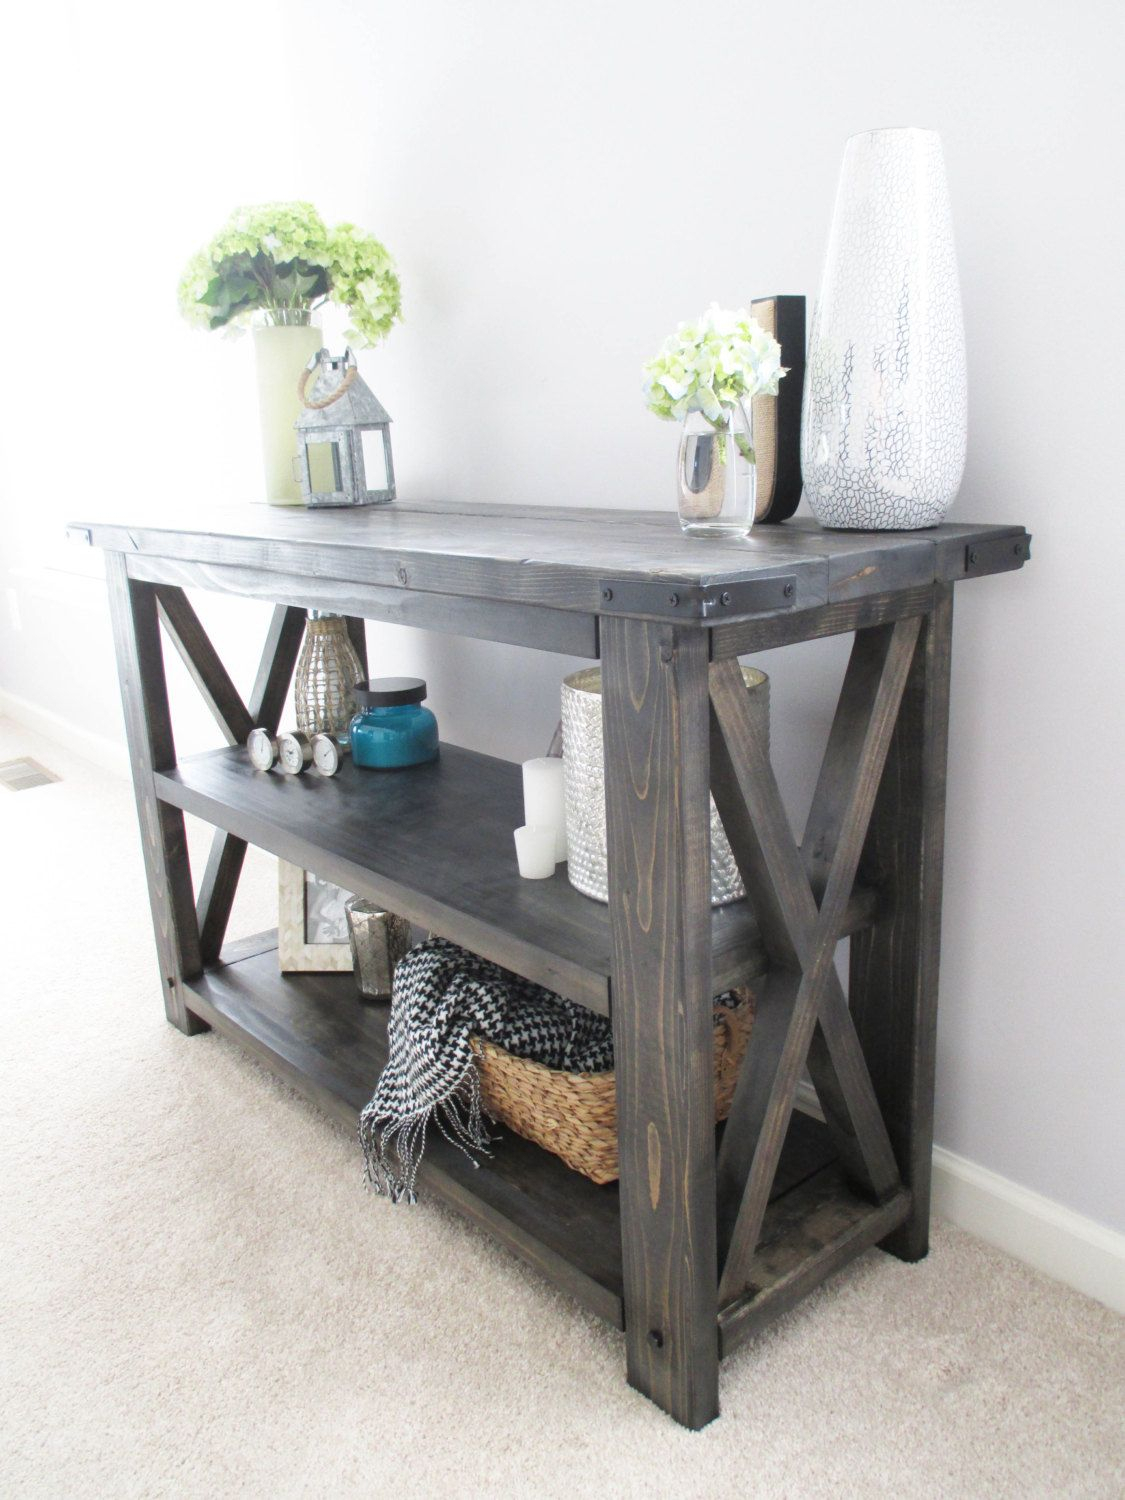 Rustic X Distressed Handmade Console / Media Table / Bookshelf – 48 With Regard To Walters Media Console Tables (View 2 of 30)